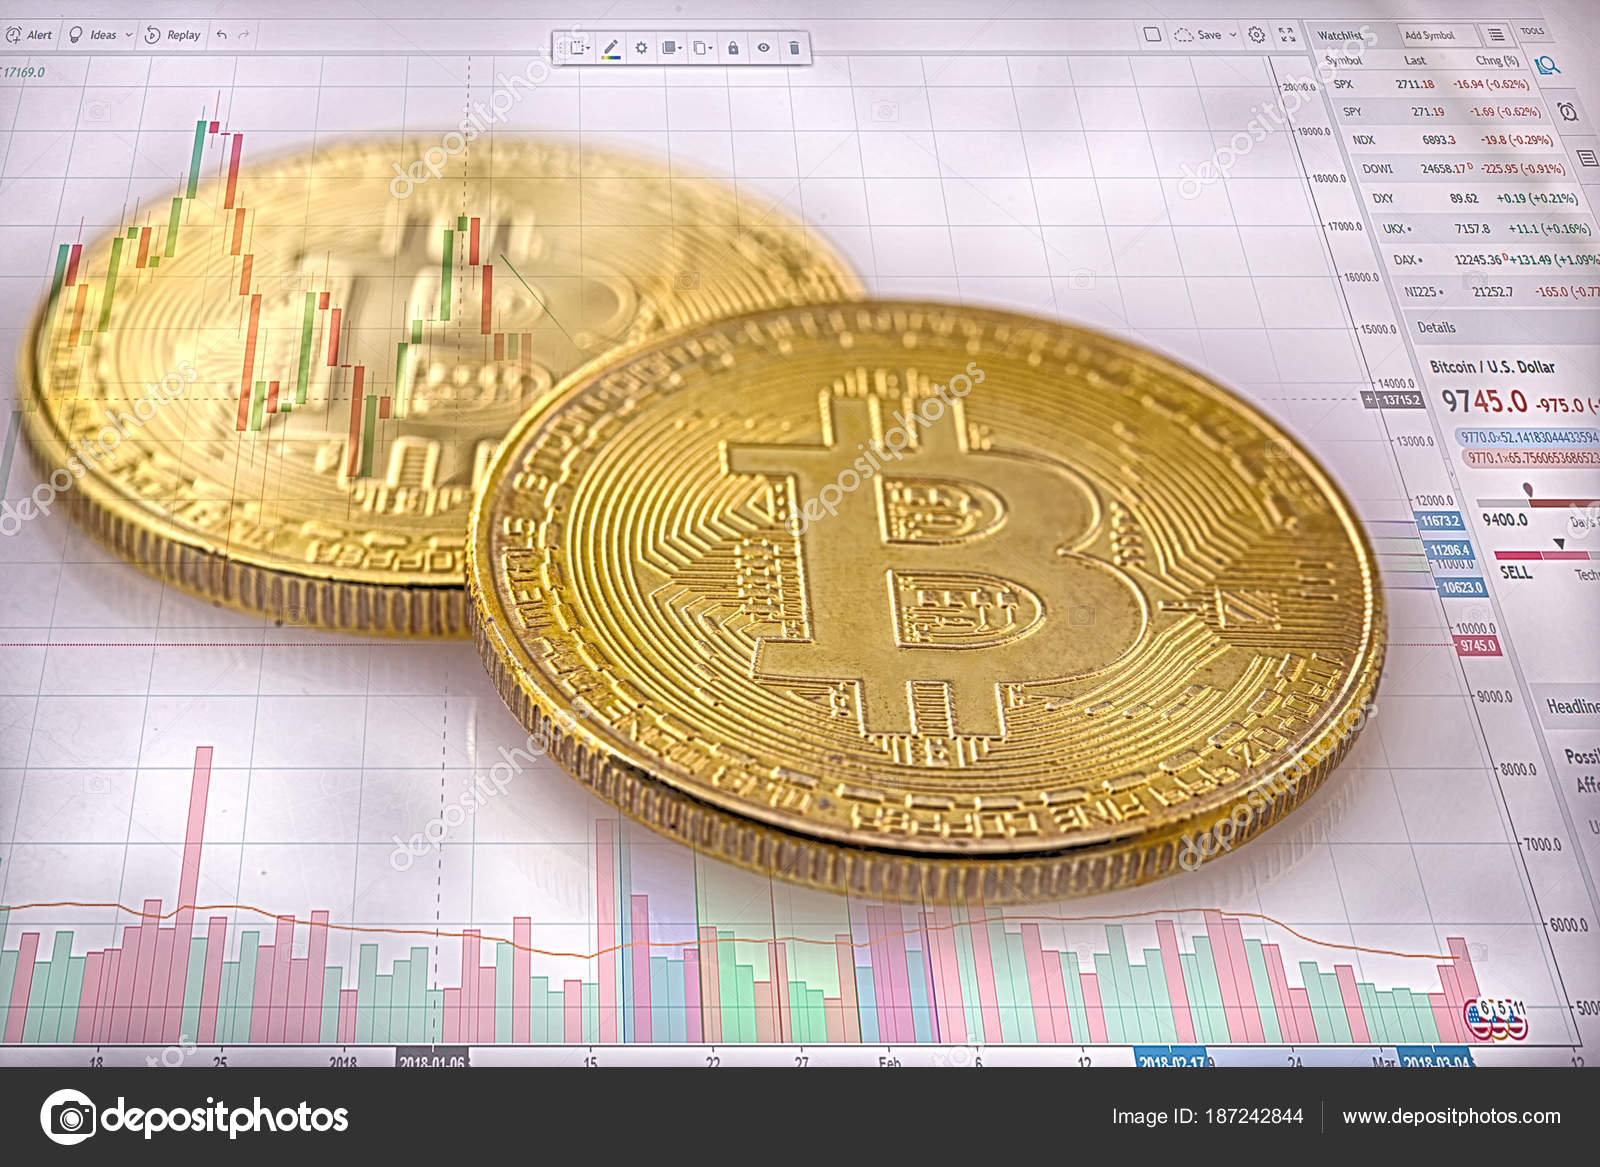 should i invest in goldcoin cryptocurrency